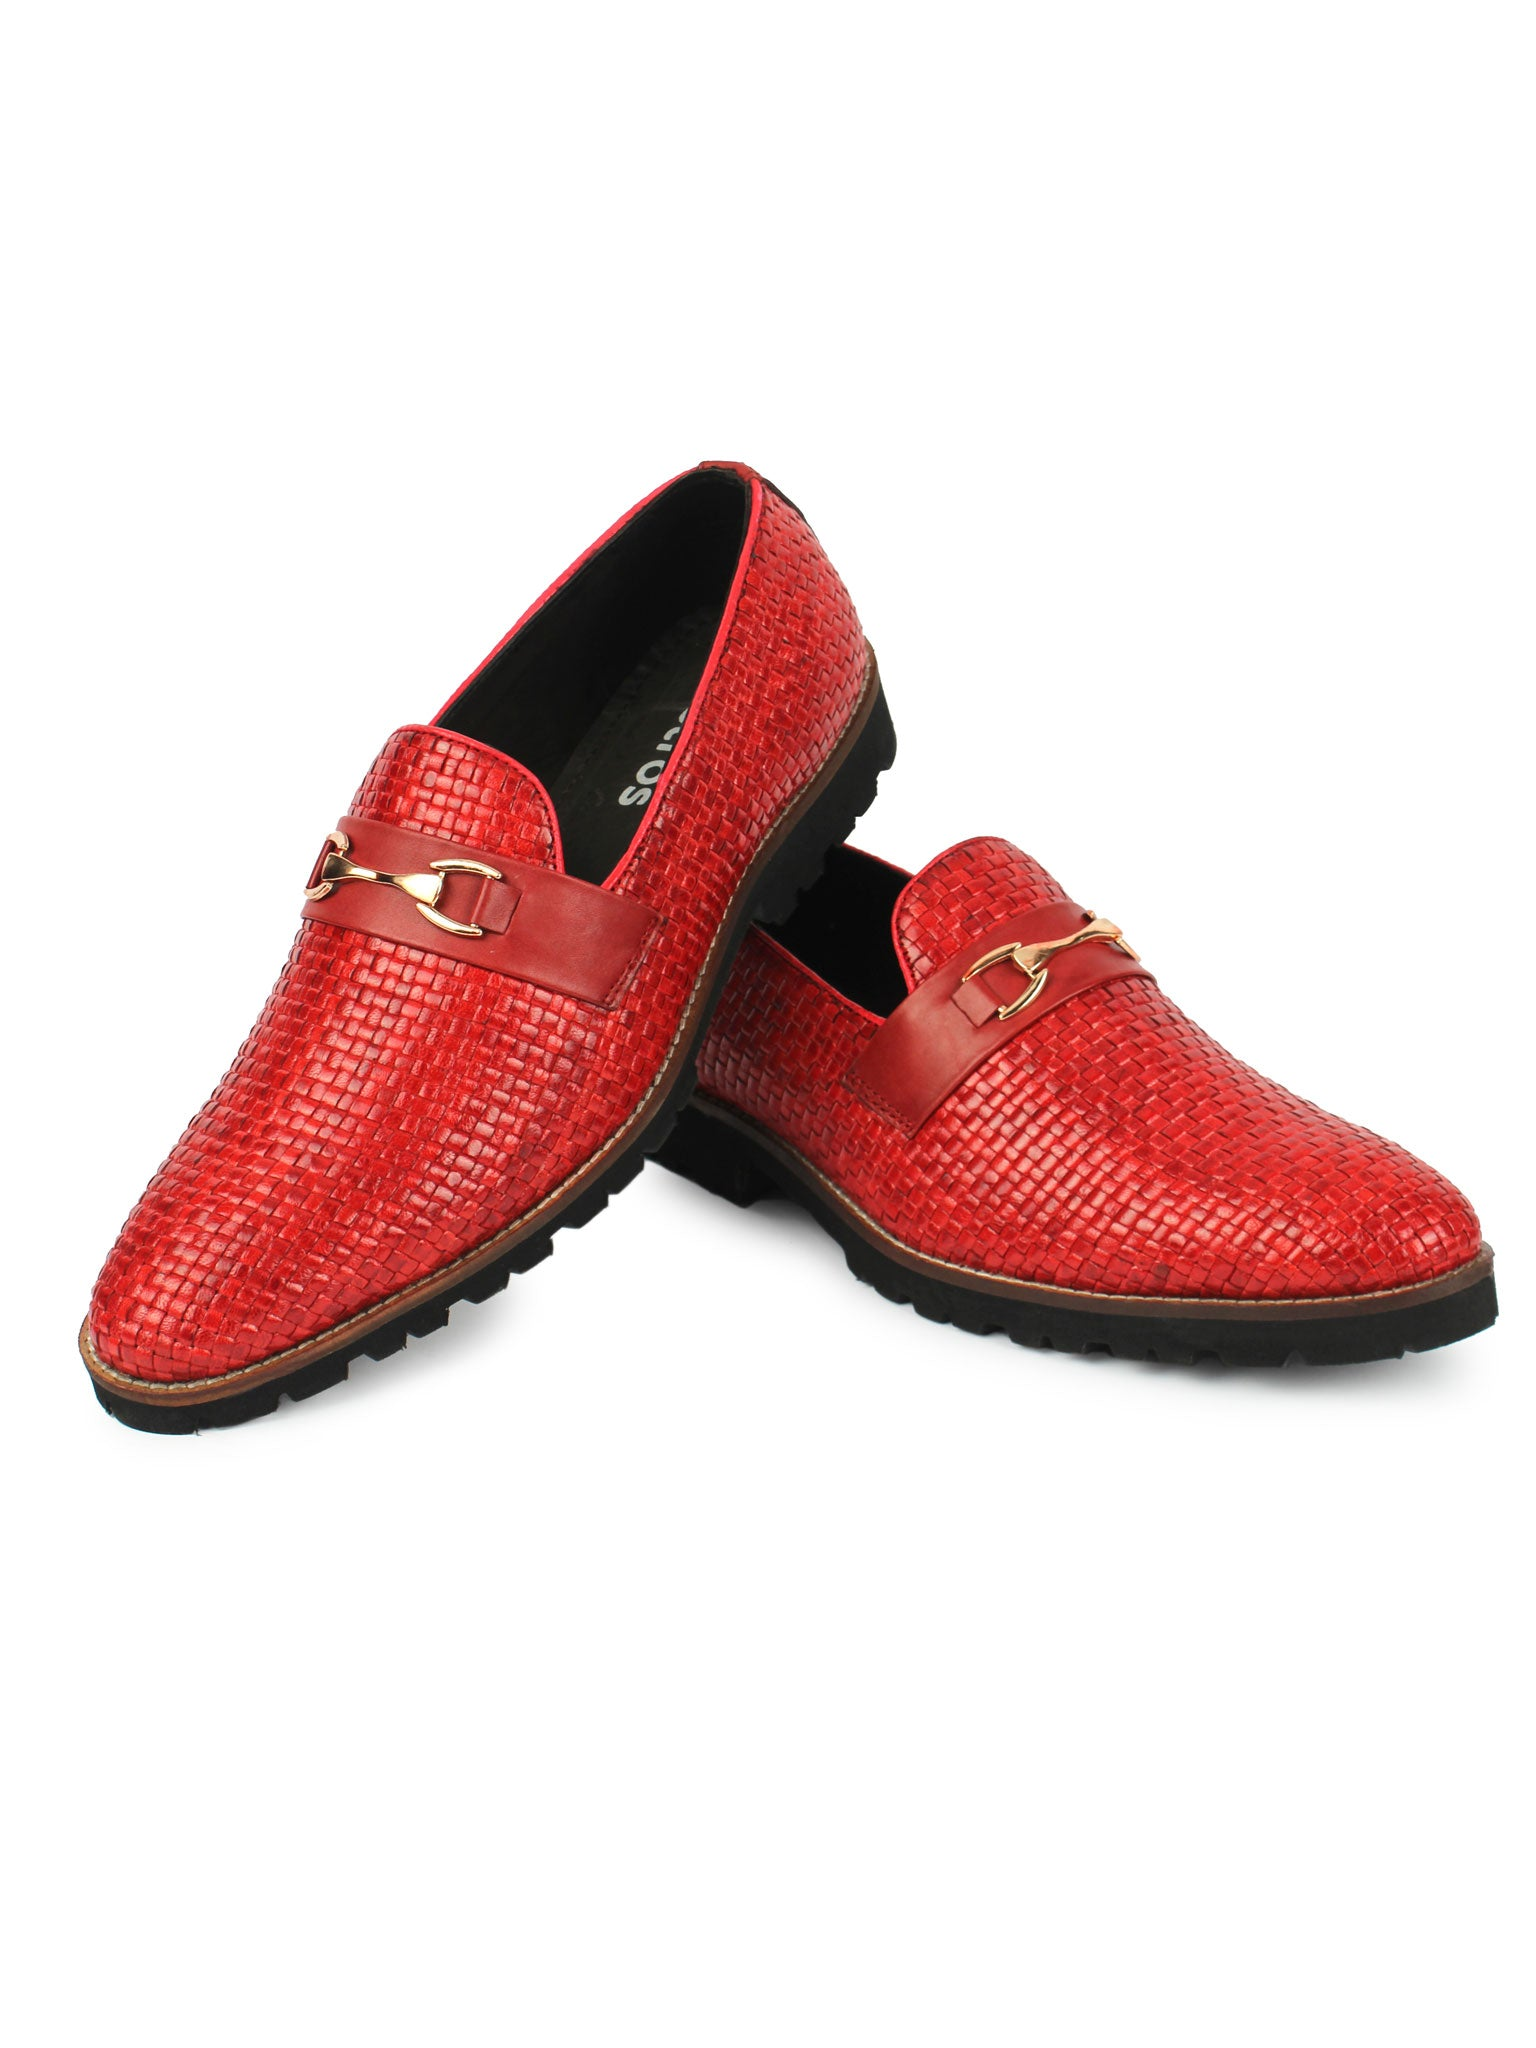 Textured Bit Loafer - Red